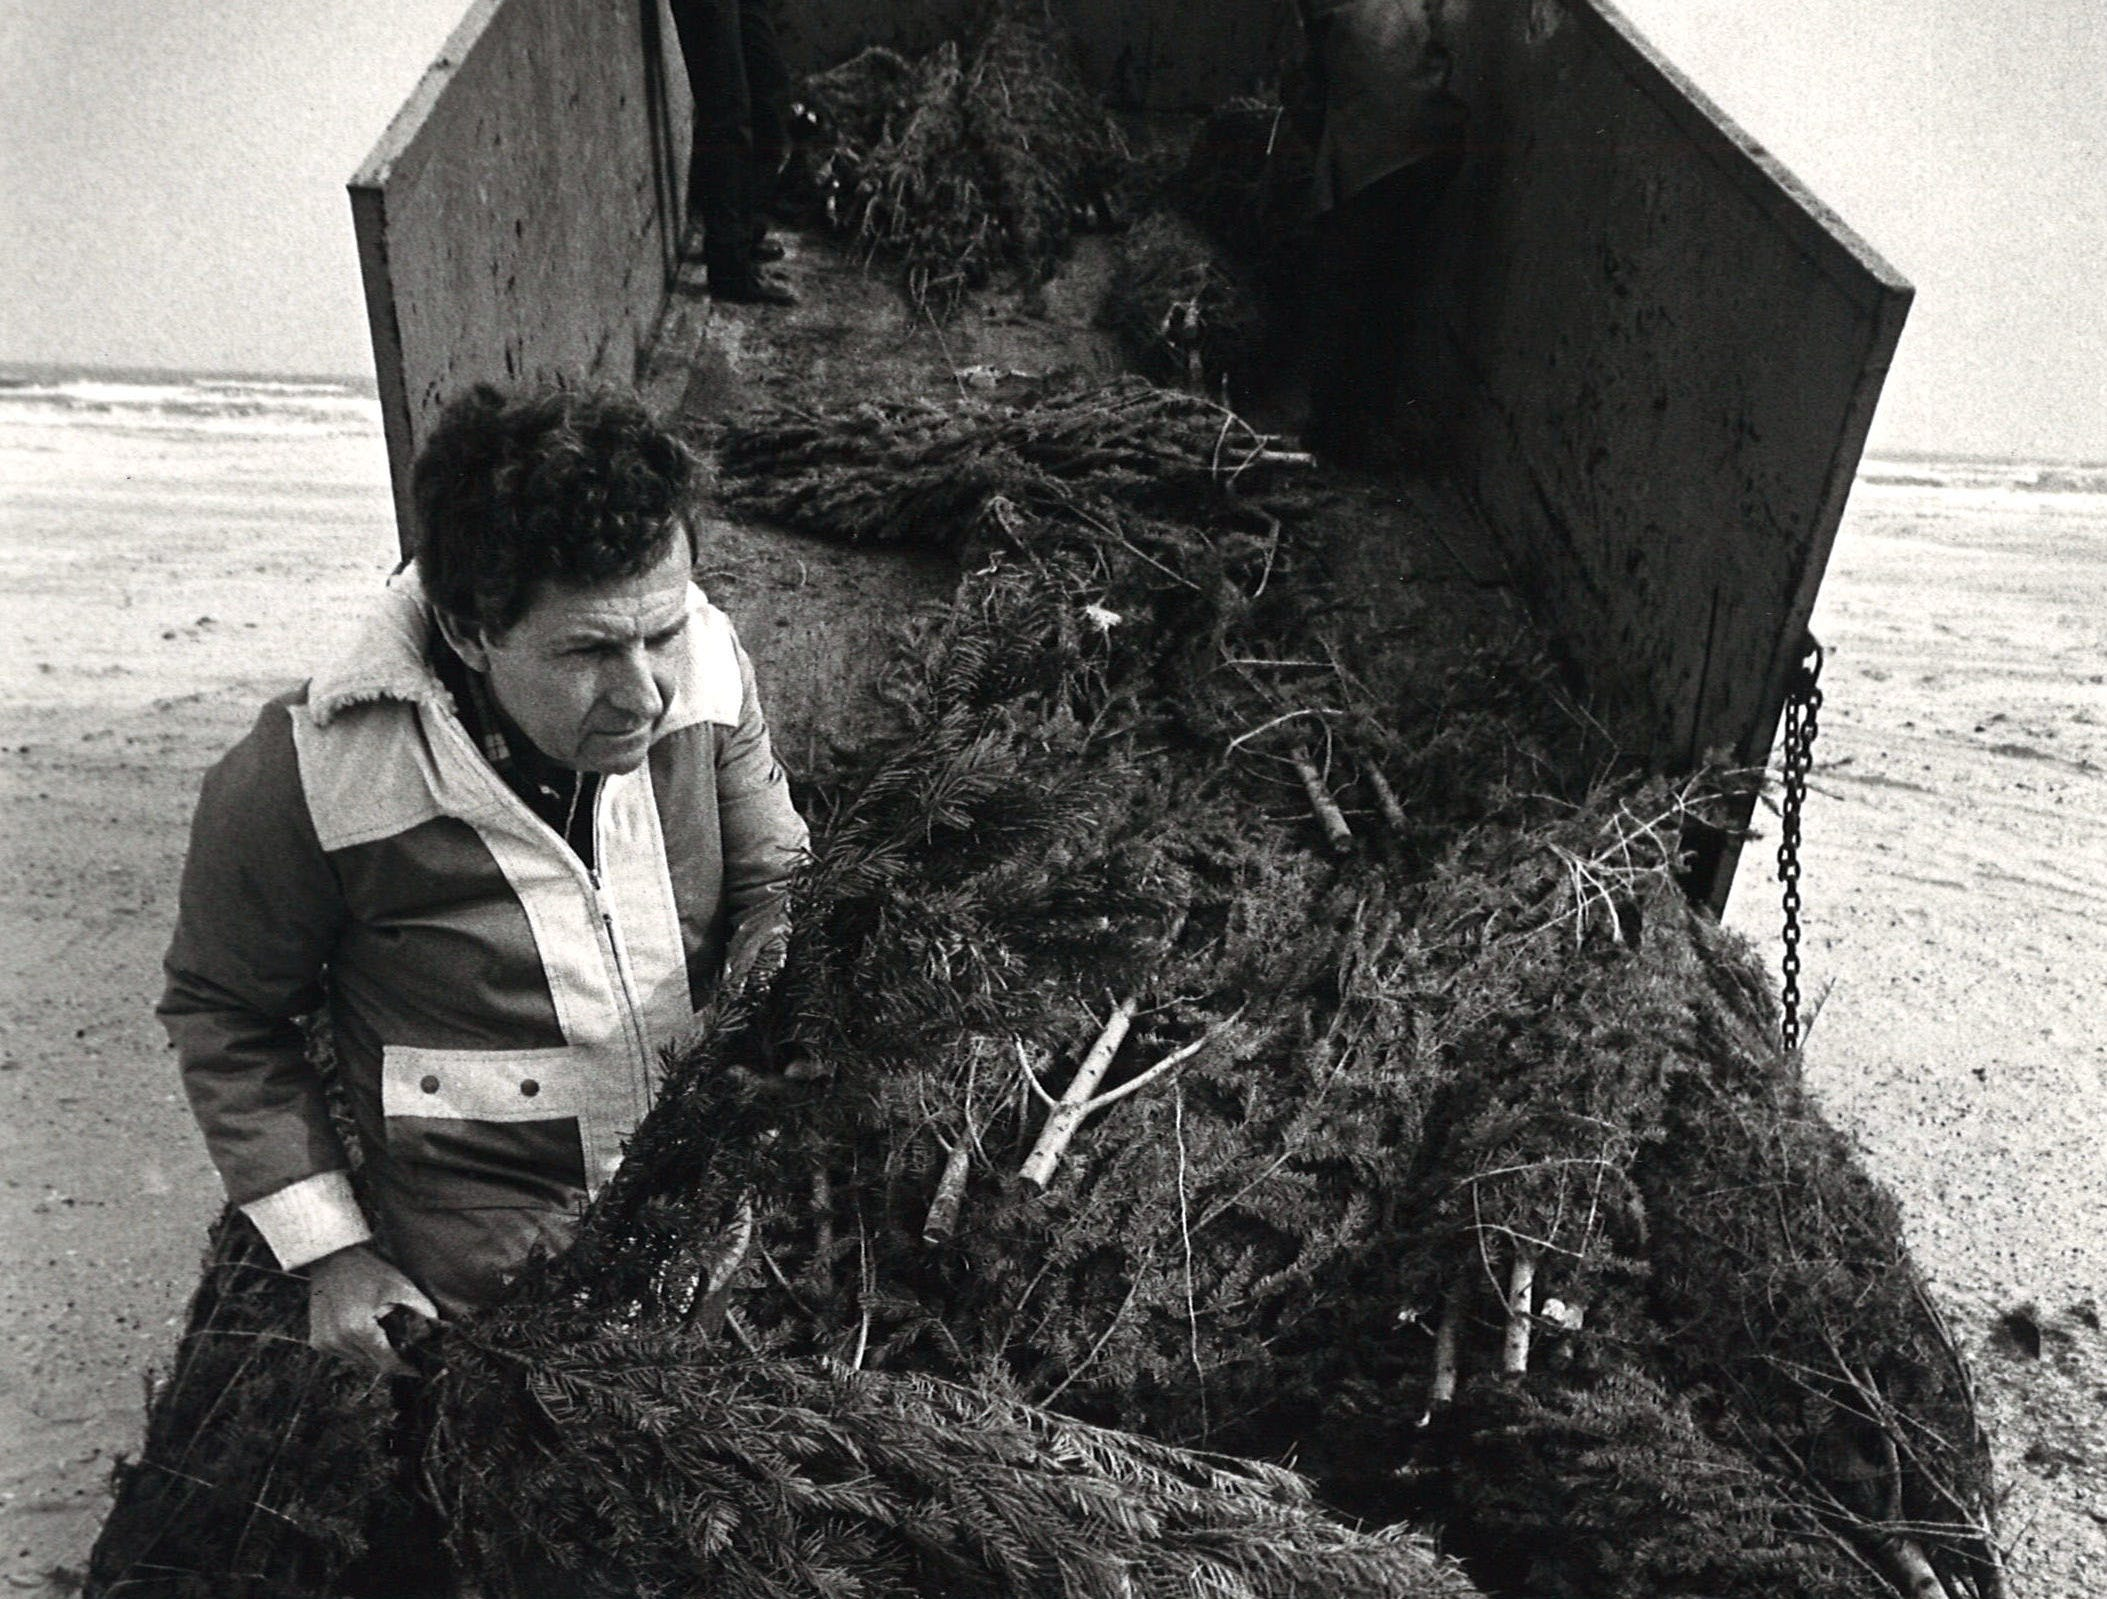 Nueces County Commissioner J.P. Luby helps unload a Christmas tree from a county dump truck on Padre Island on Jan. 3, 1983. An estimated 1,200 trees were donated to rebuild the sand dunes.